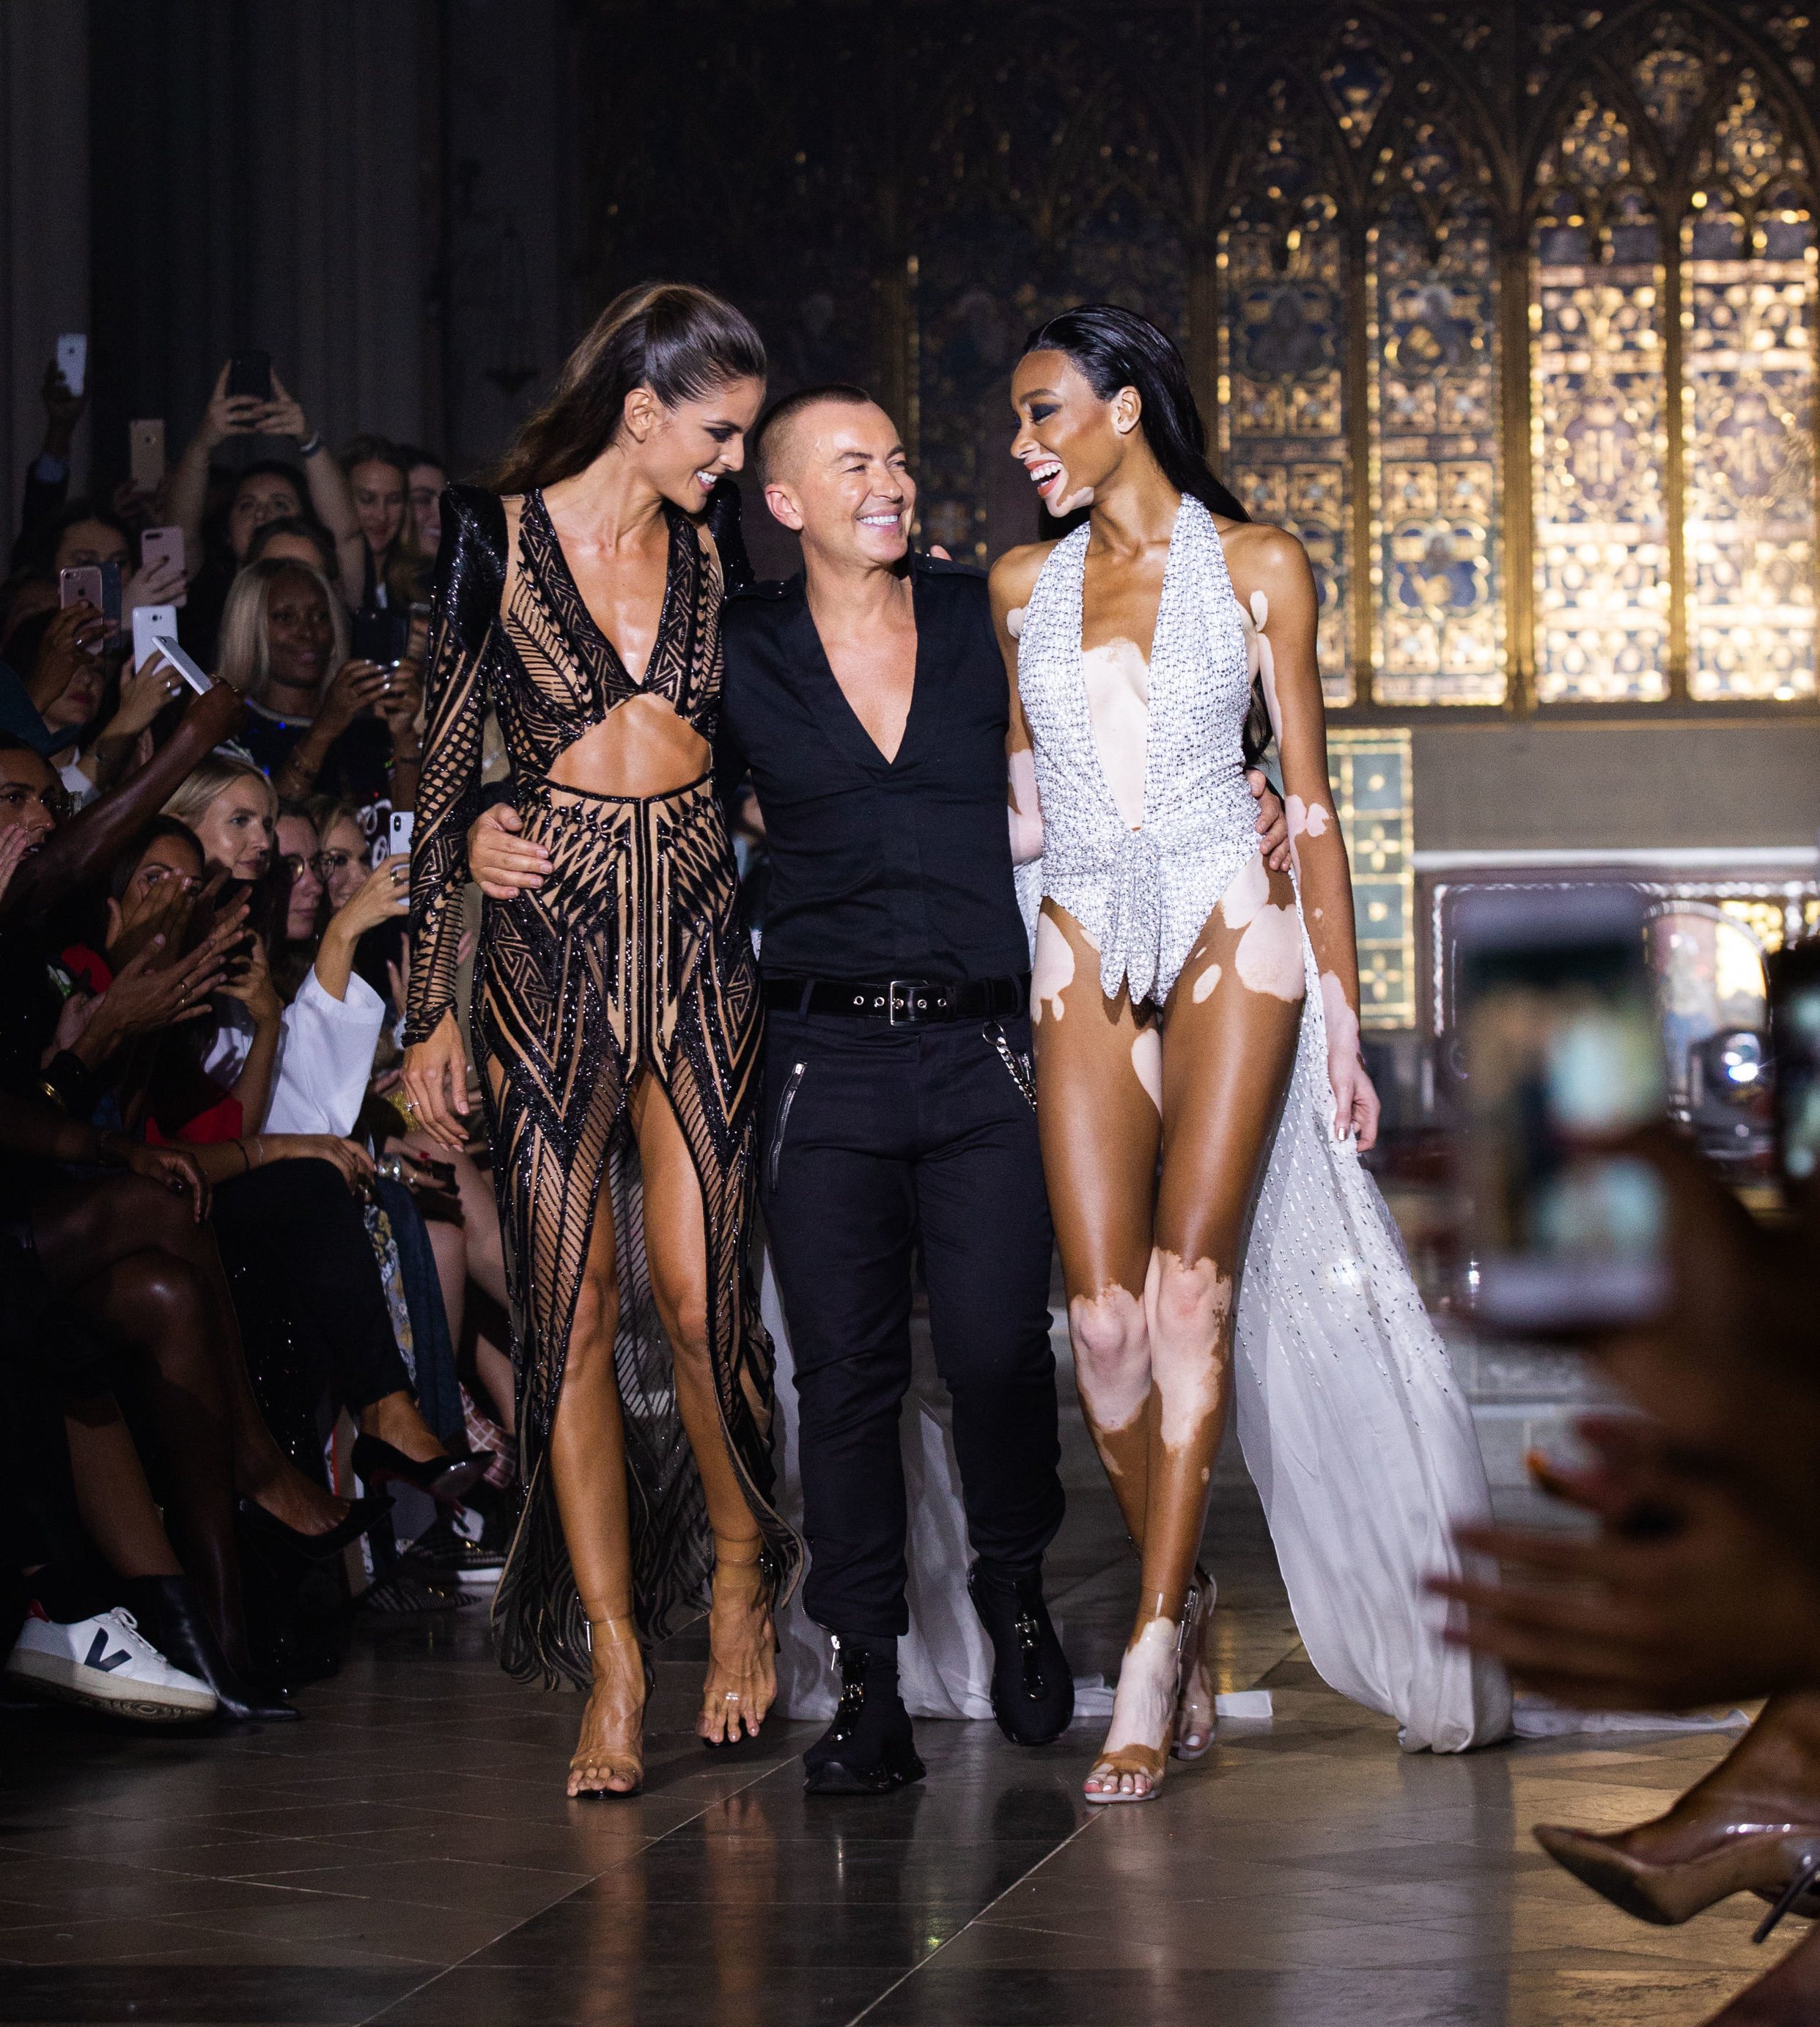 Model Winnie Harlow (right) with Julien Macdonald on the catwalk during his London Fashion Week show held at St John & Otilde's Hyde Park, London.